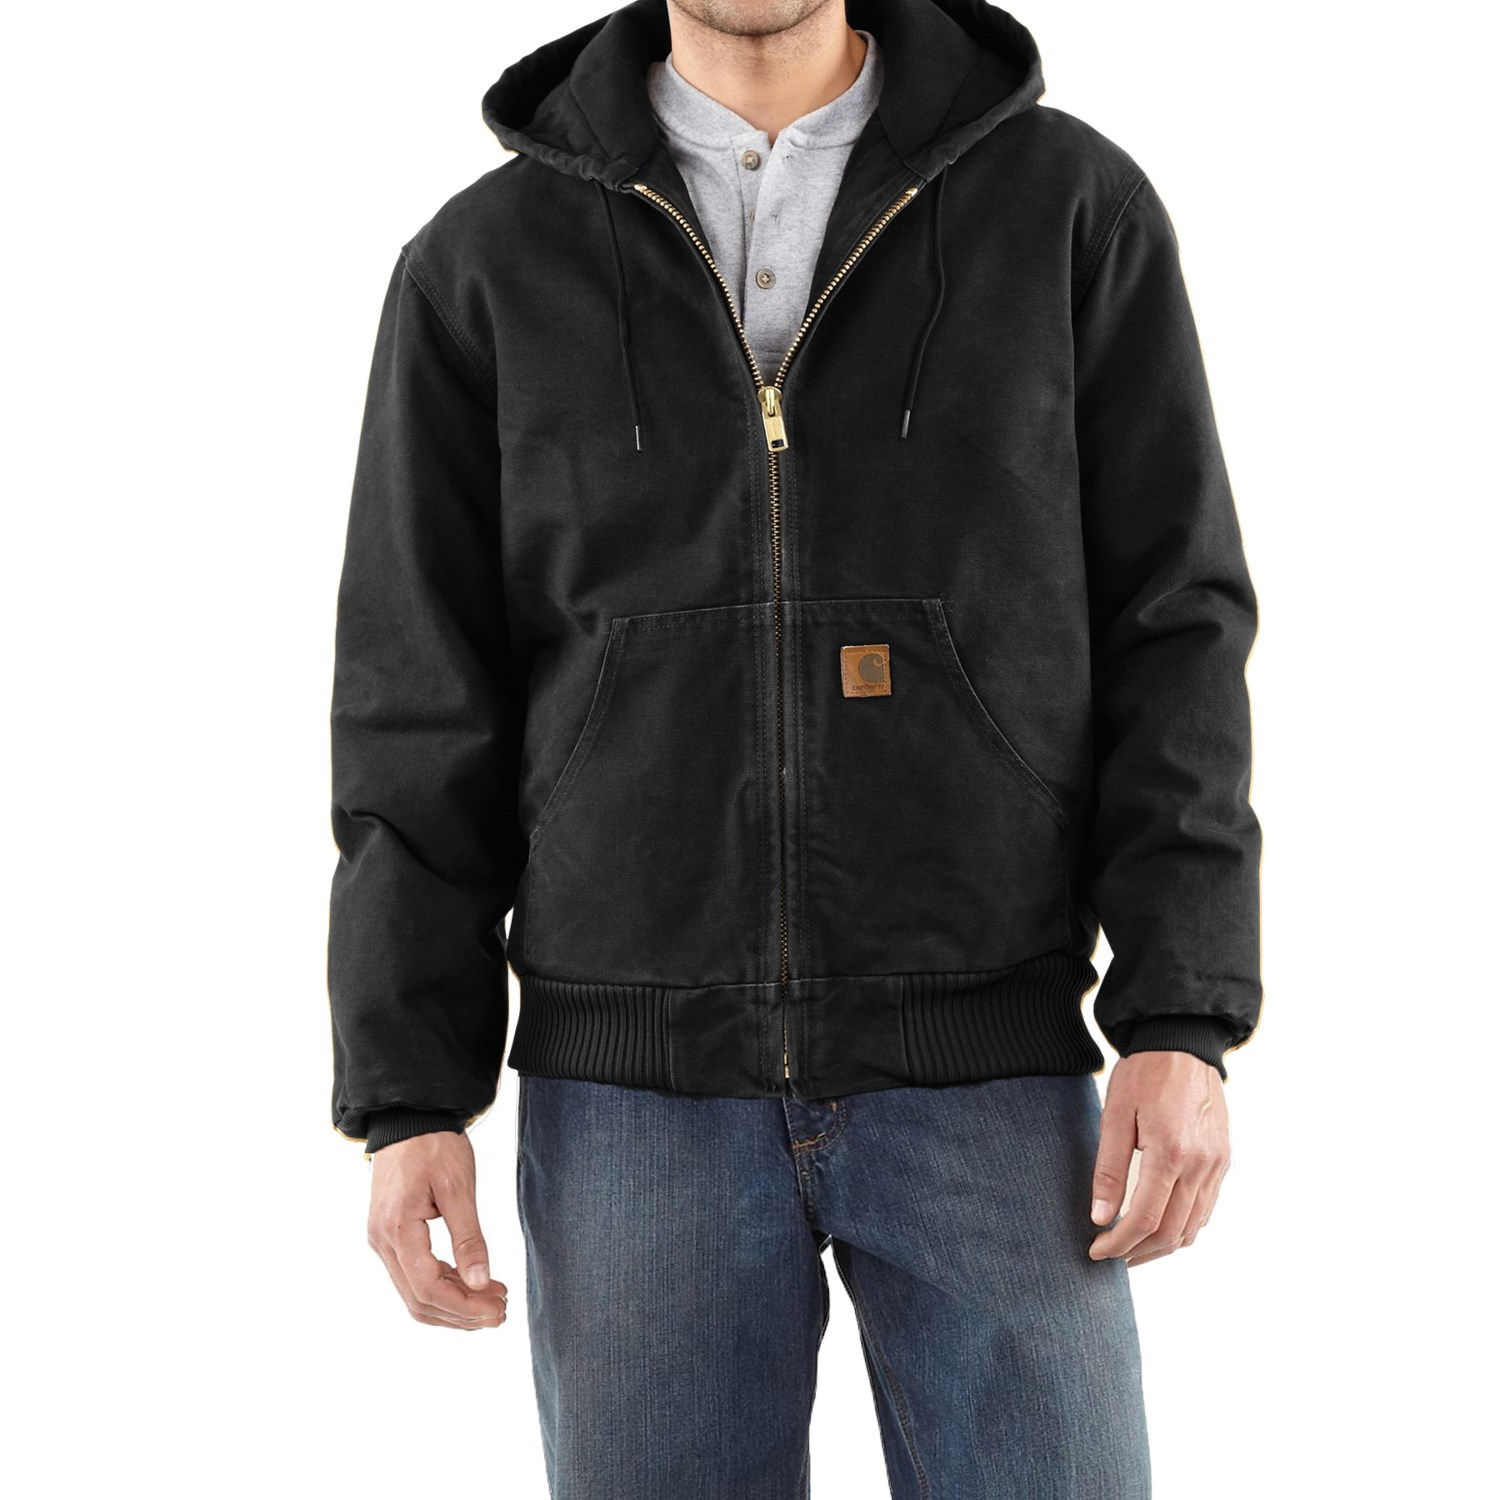 Carhartt Sandstone Active Jacket Washed Duck For Men - Factory-second